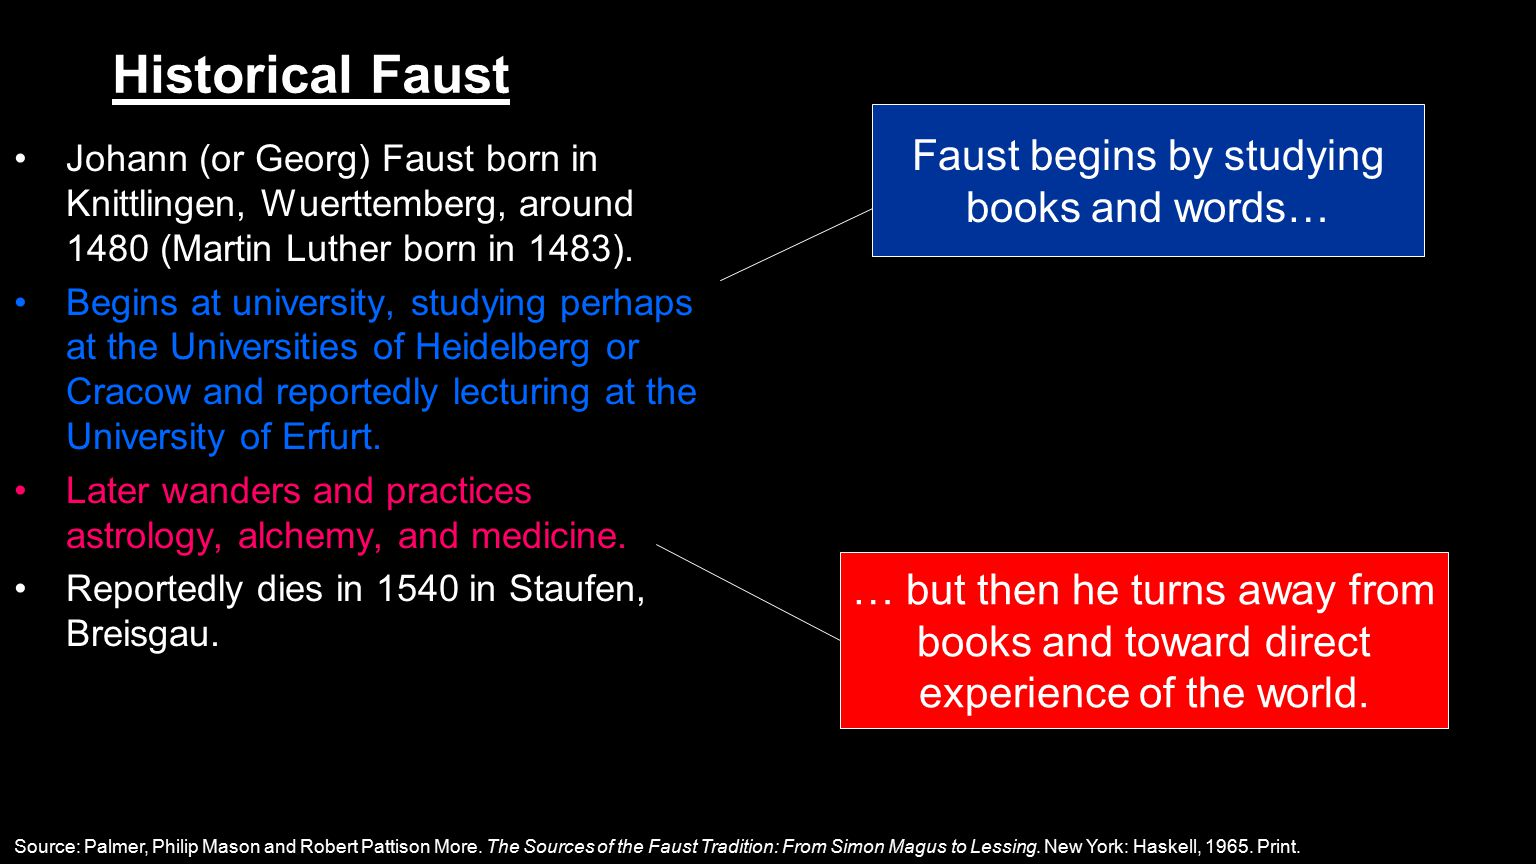 Faust begins by studying books and words… … but then he turns away from books and toward direct experience of the world.